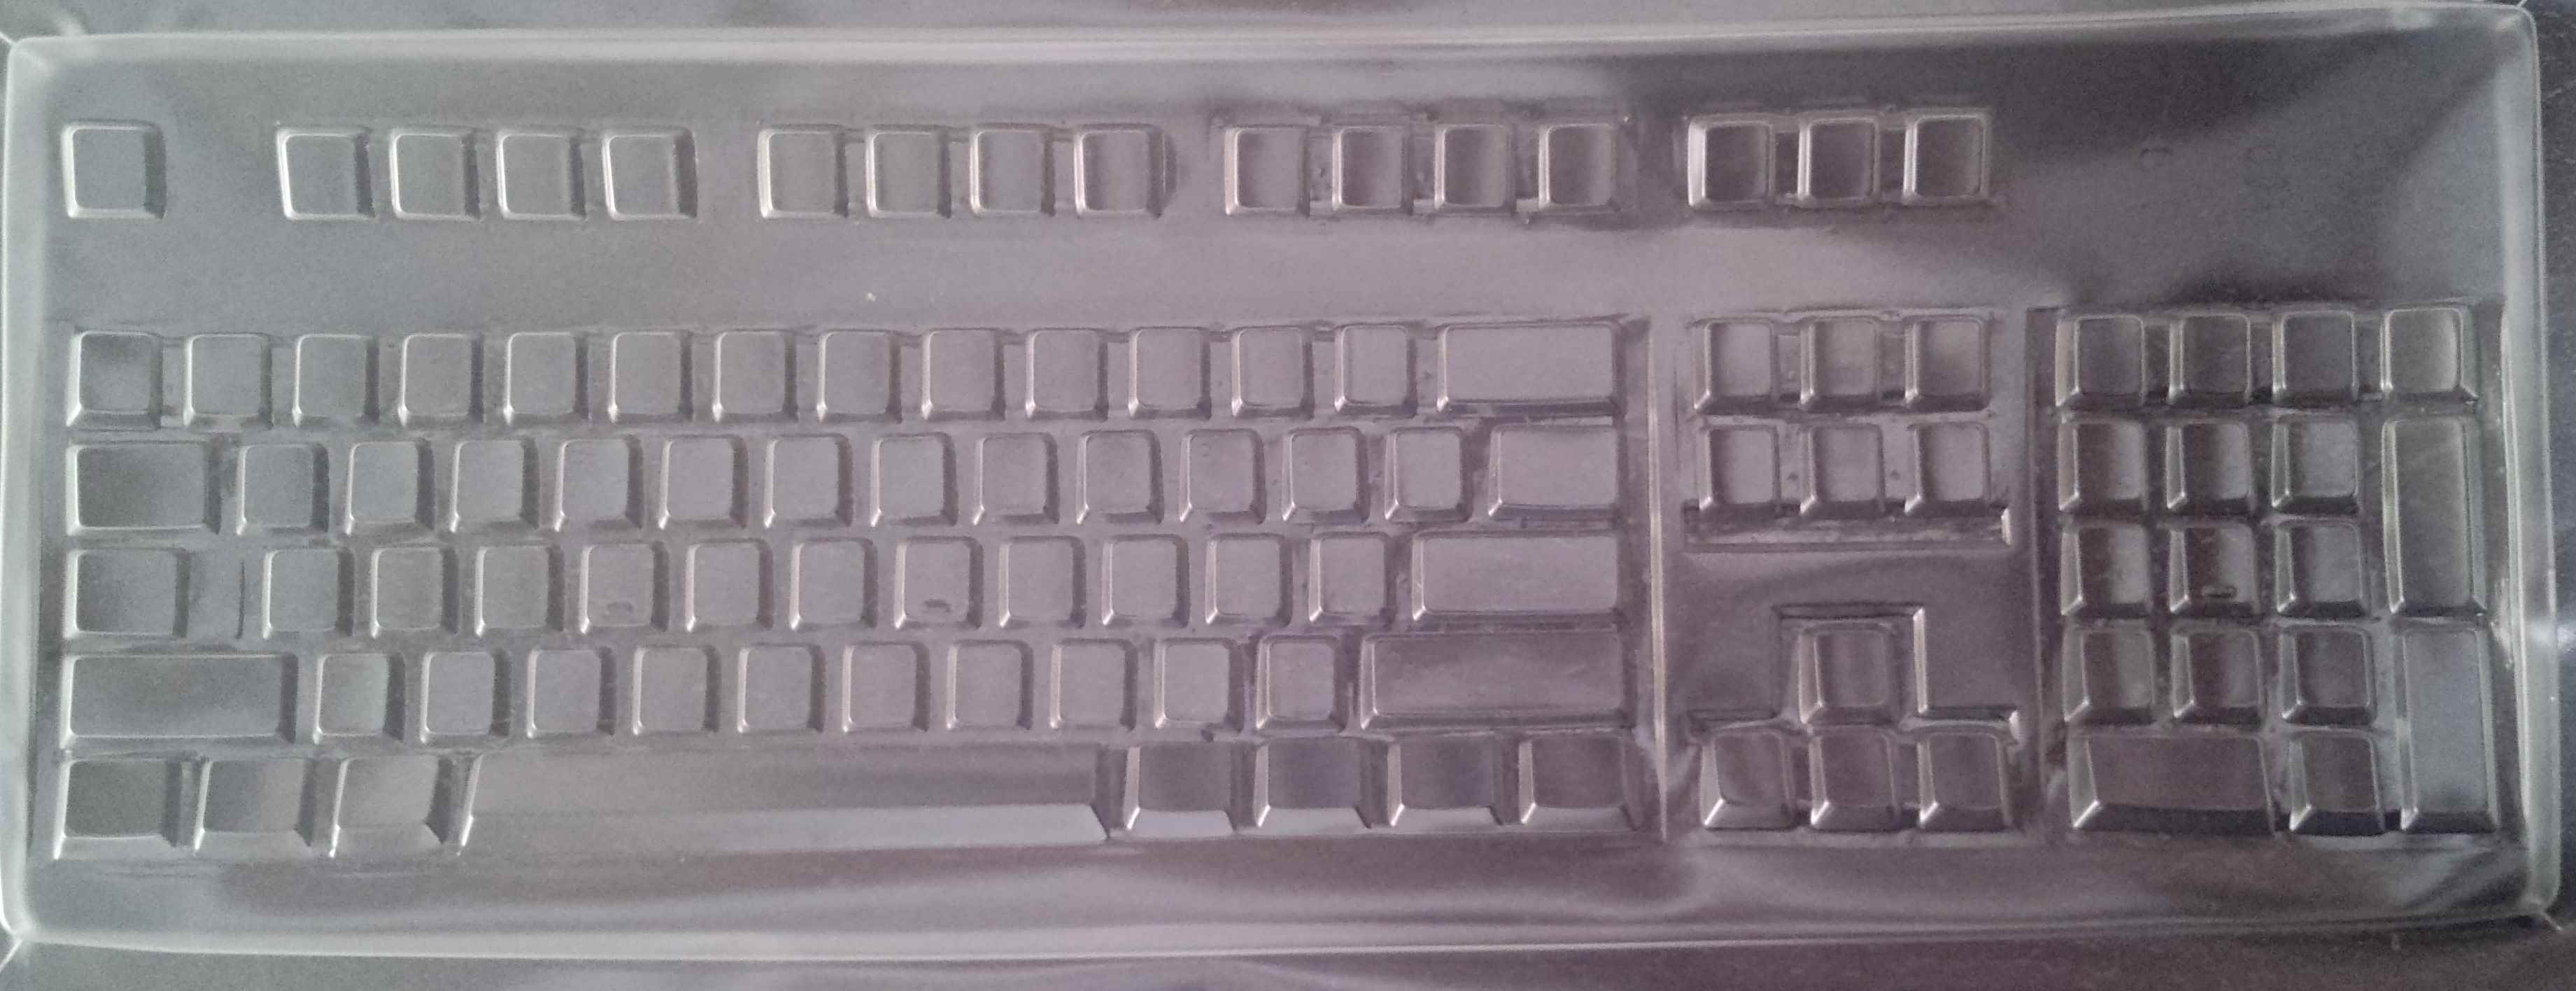 Cherry G83-6104 LPMUS & 01 Win & RS6000M Keyboard Cover